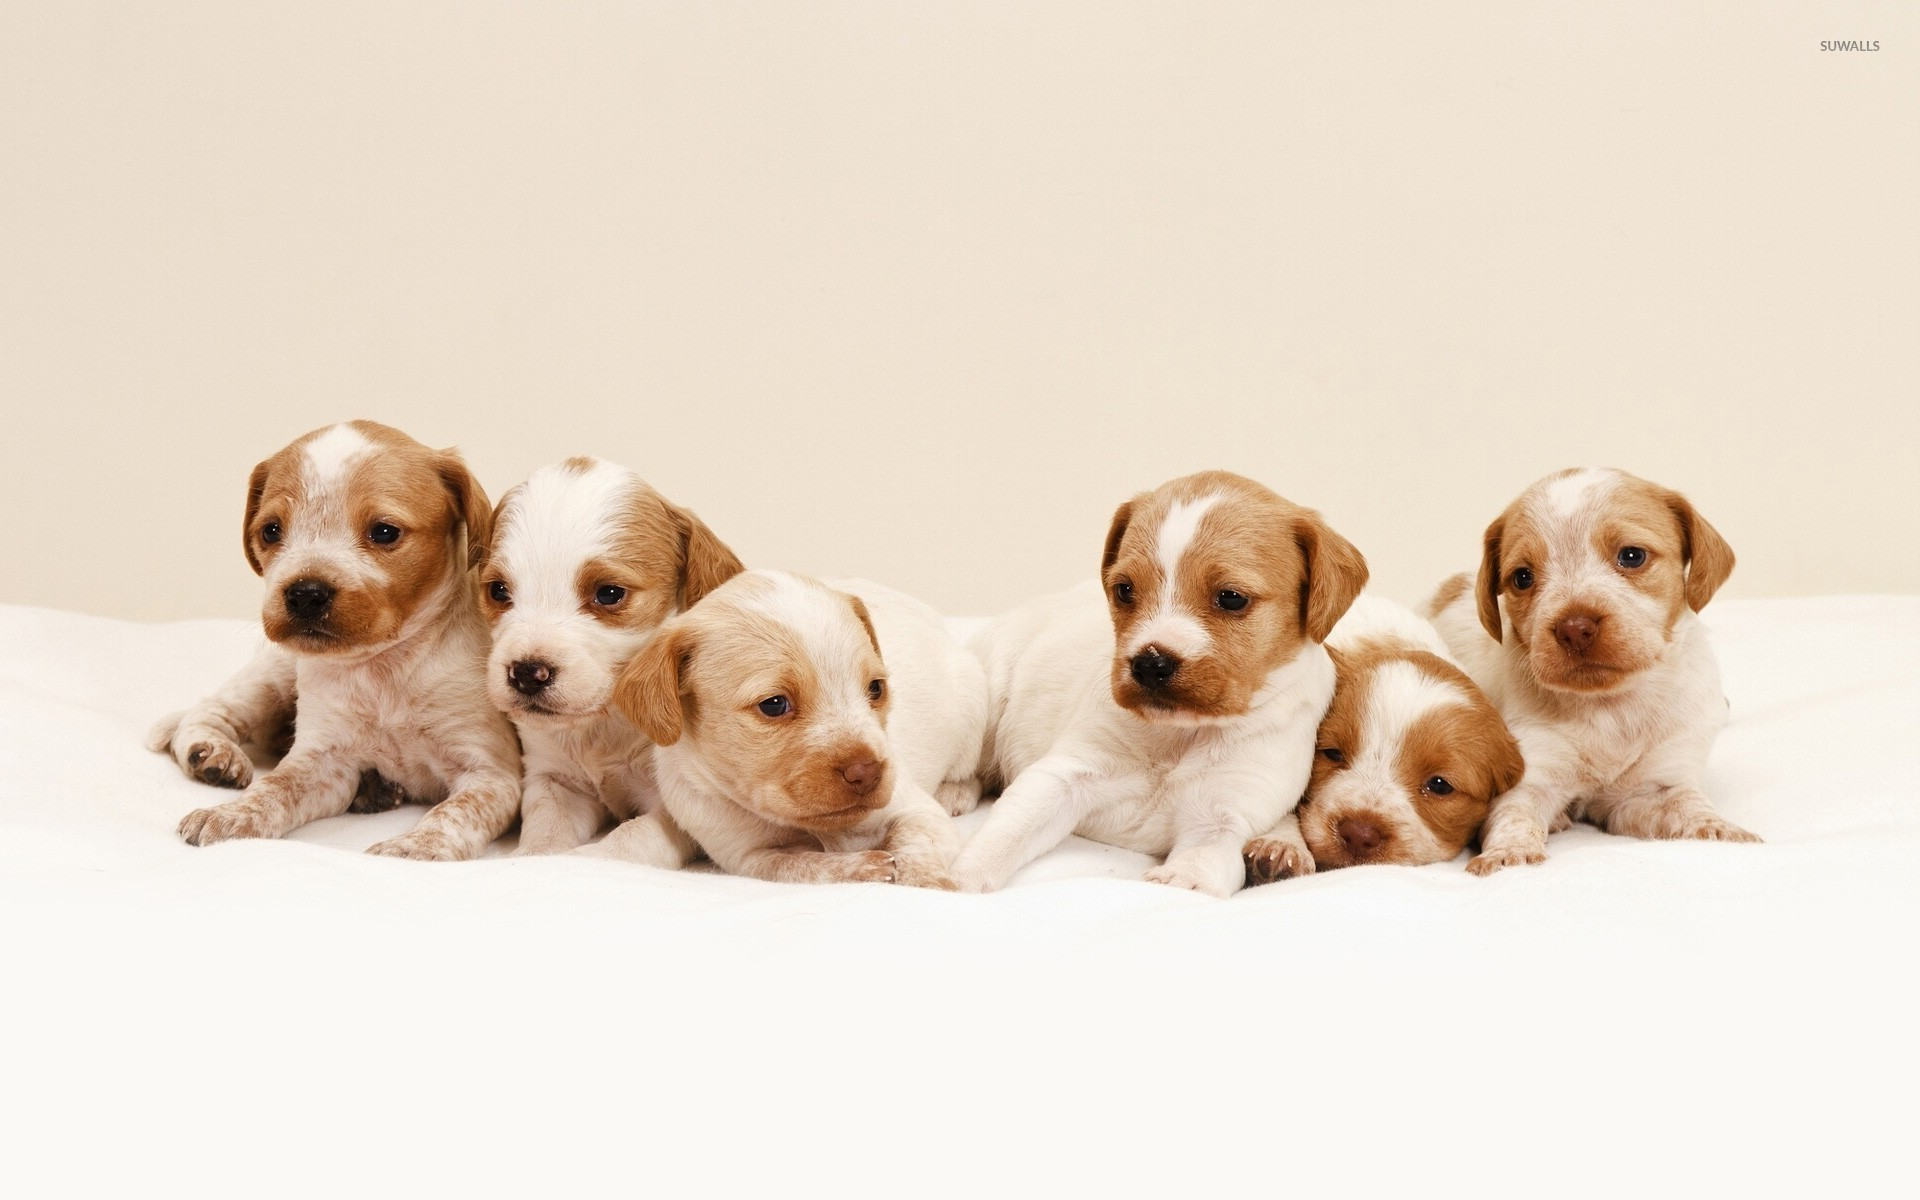 cute puppies wallpaper animal wallpapers 24770